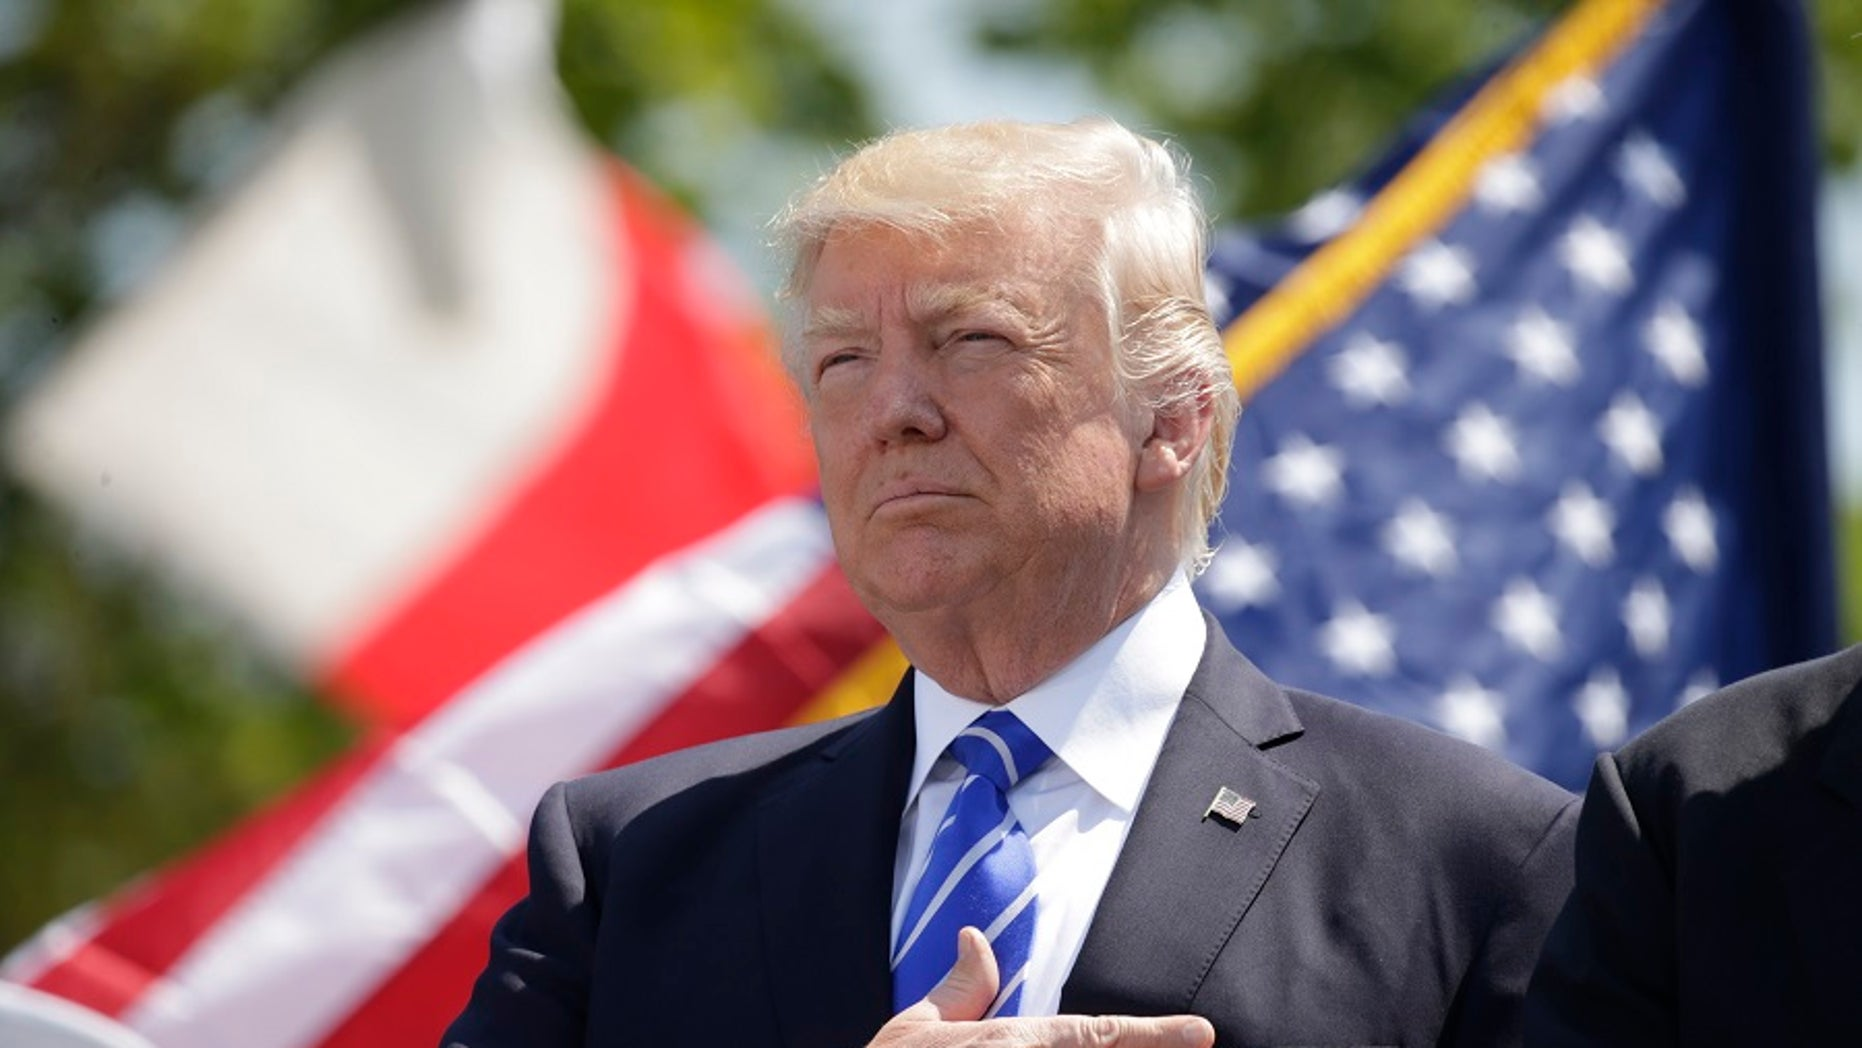 President Donald Trump holds his hand over his heart for the U.S. National Anthem as he attends the Coast Guard Academy commencement ceremonies to address the graduating class in New London, Connecticut, U.S. May 17, 2017.